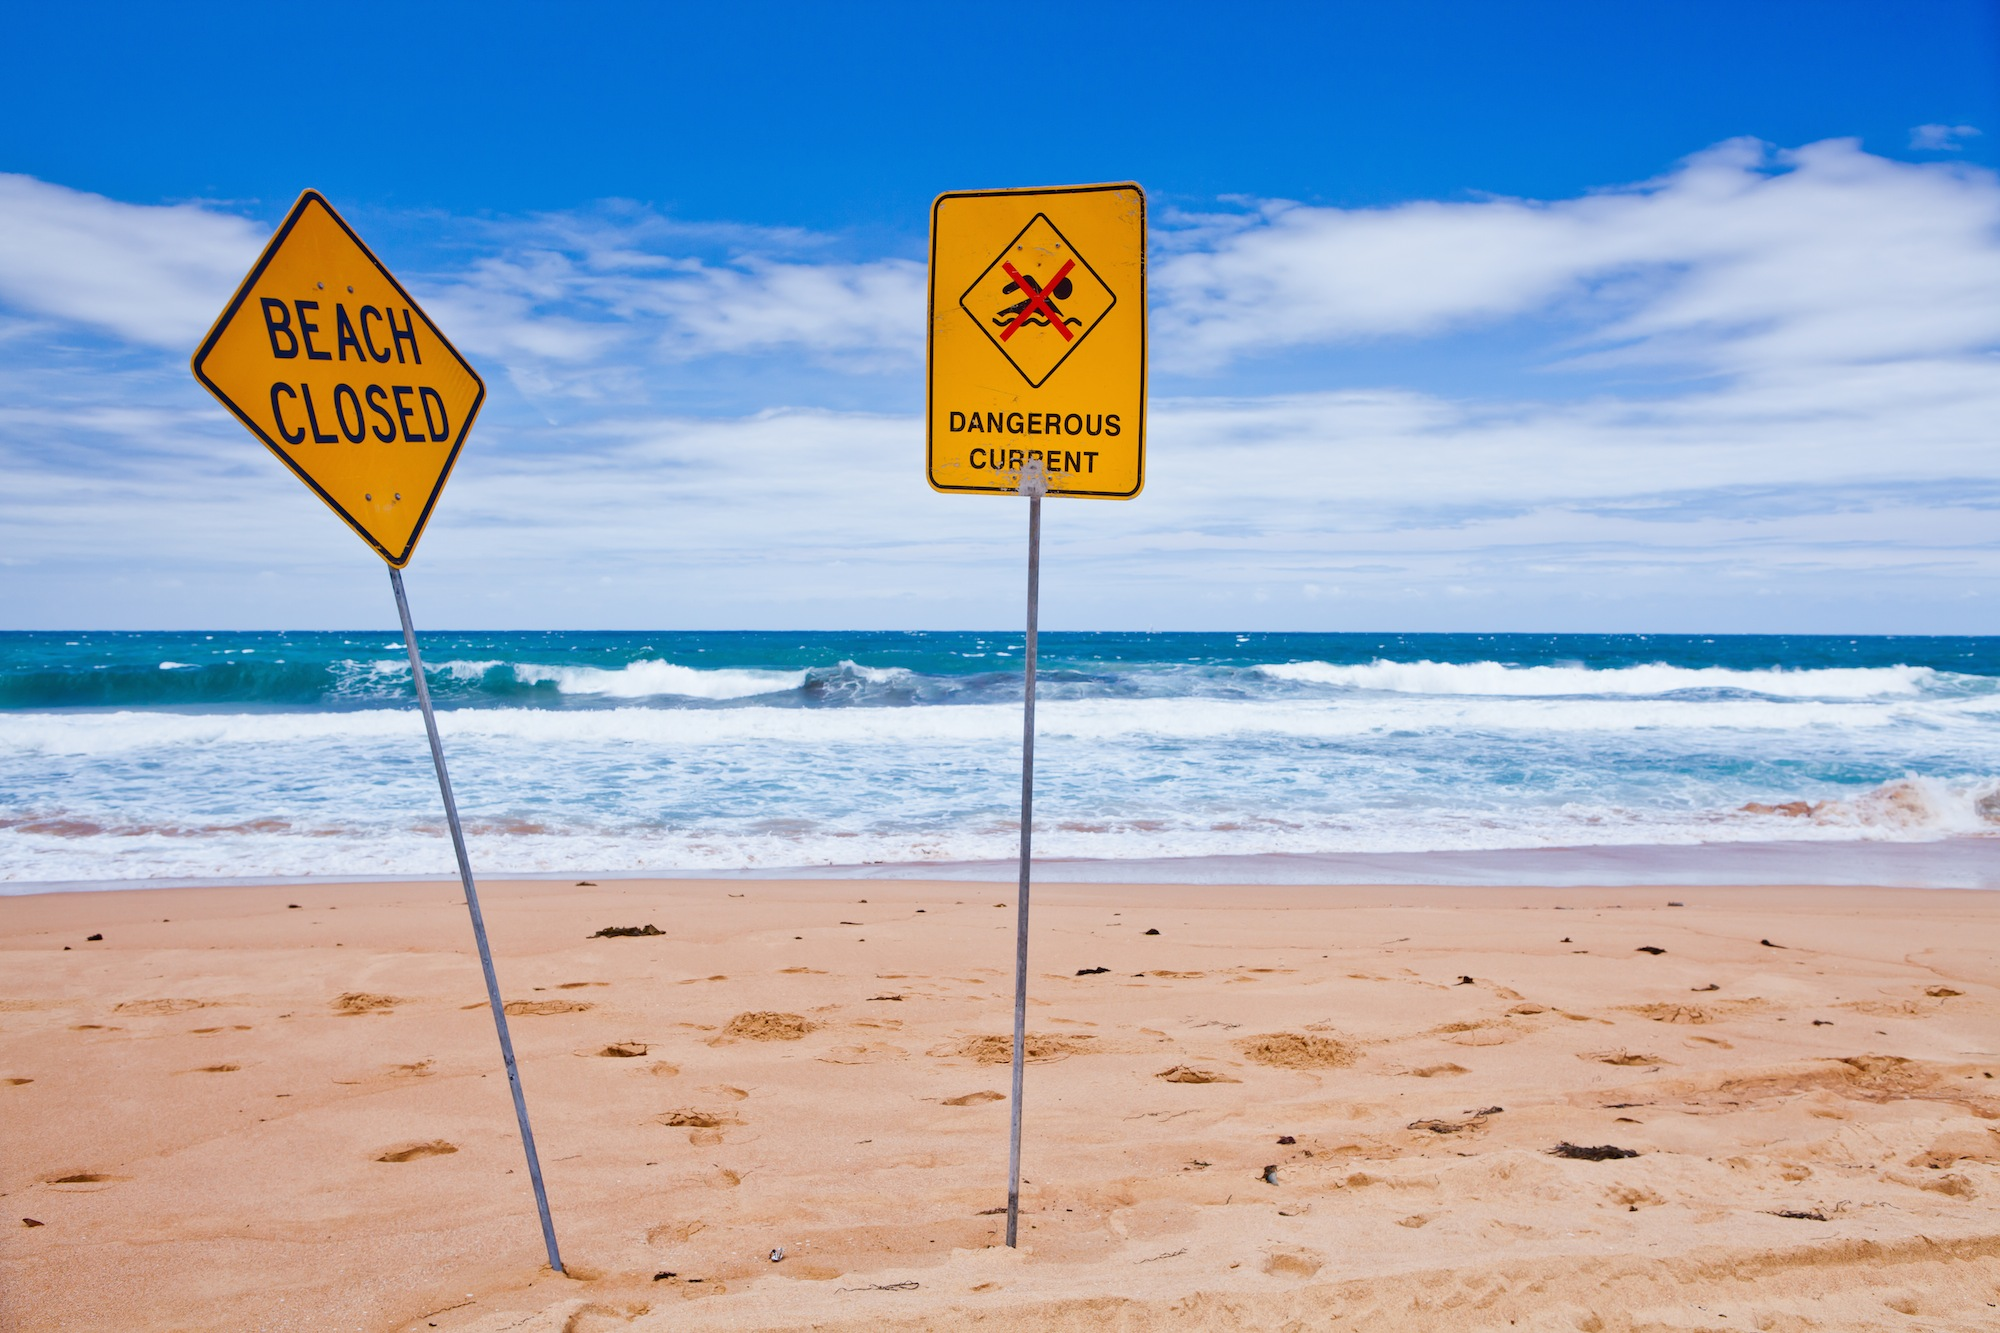 Rip currents pose a serious danger for surfers and swimmers – it turns out breaking waves actually serve as somewhat of a safety net.